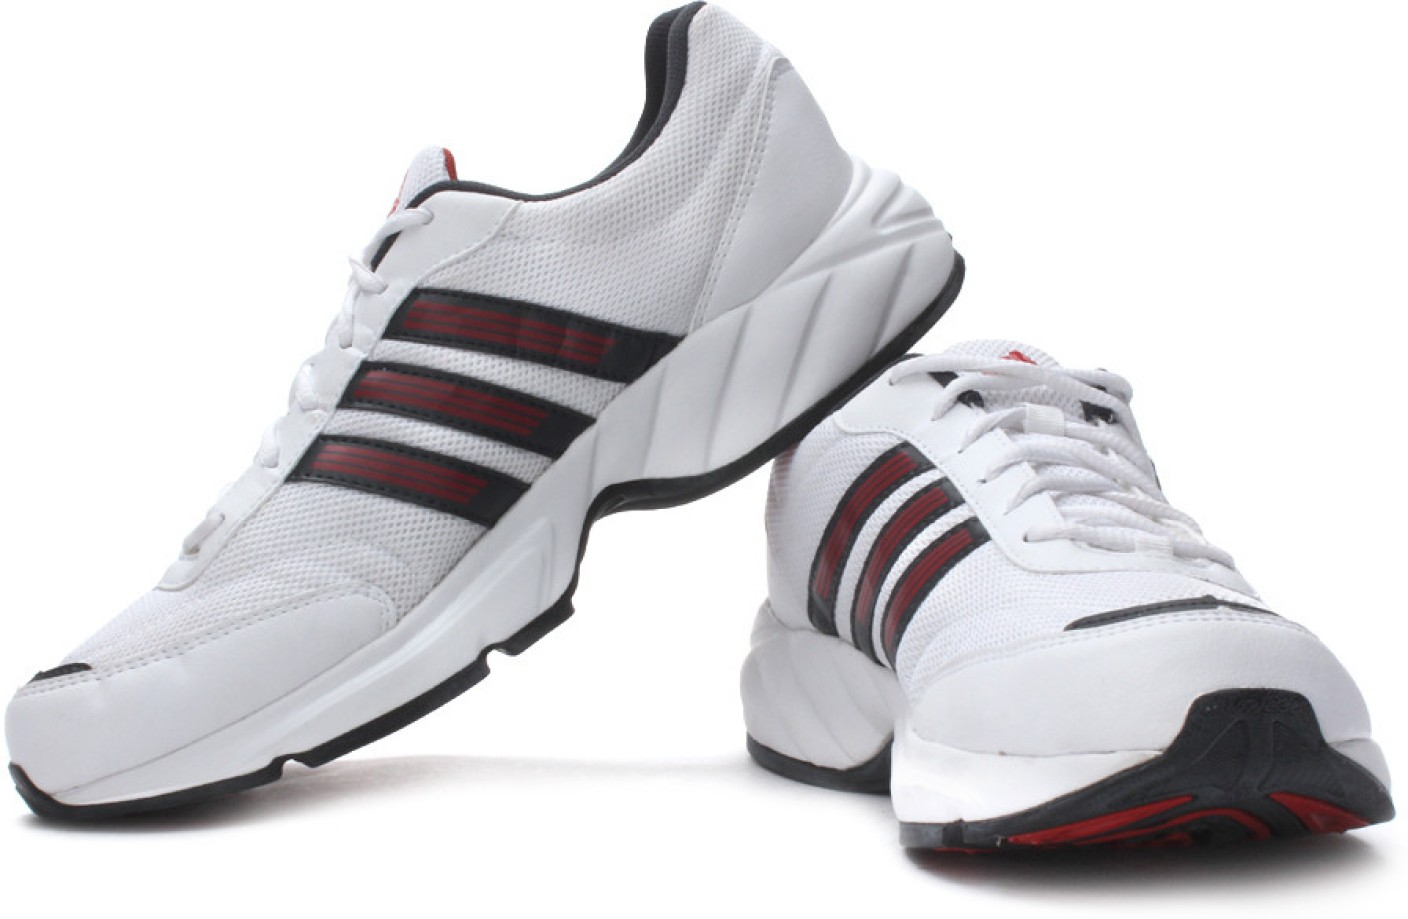 Best Place To Buy Adidas Running Shoes Online